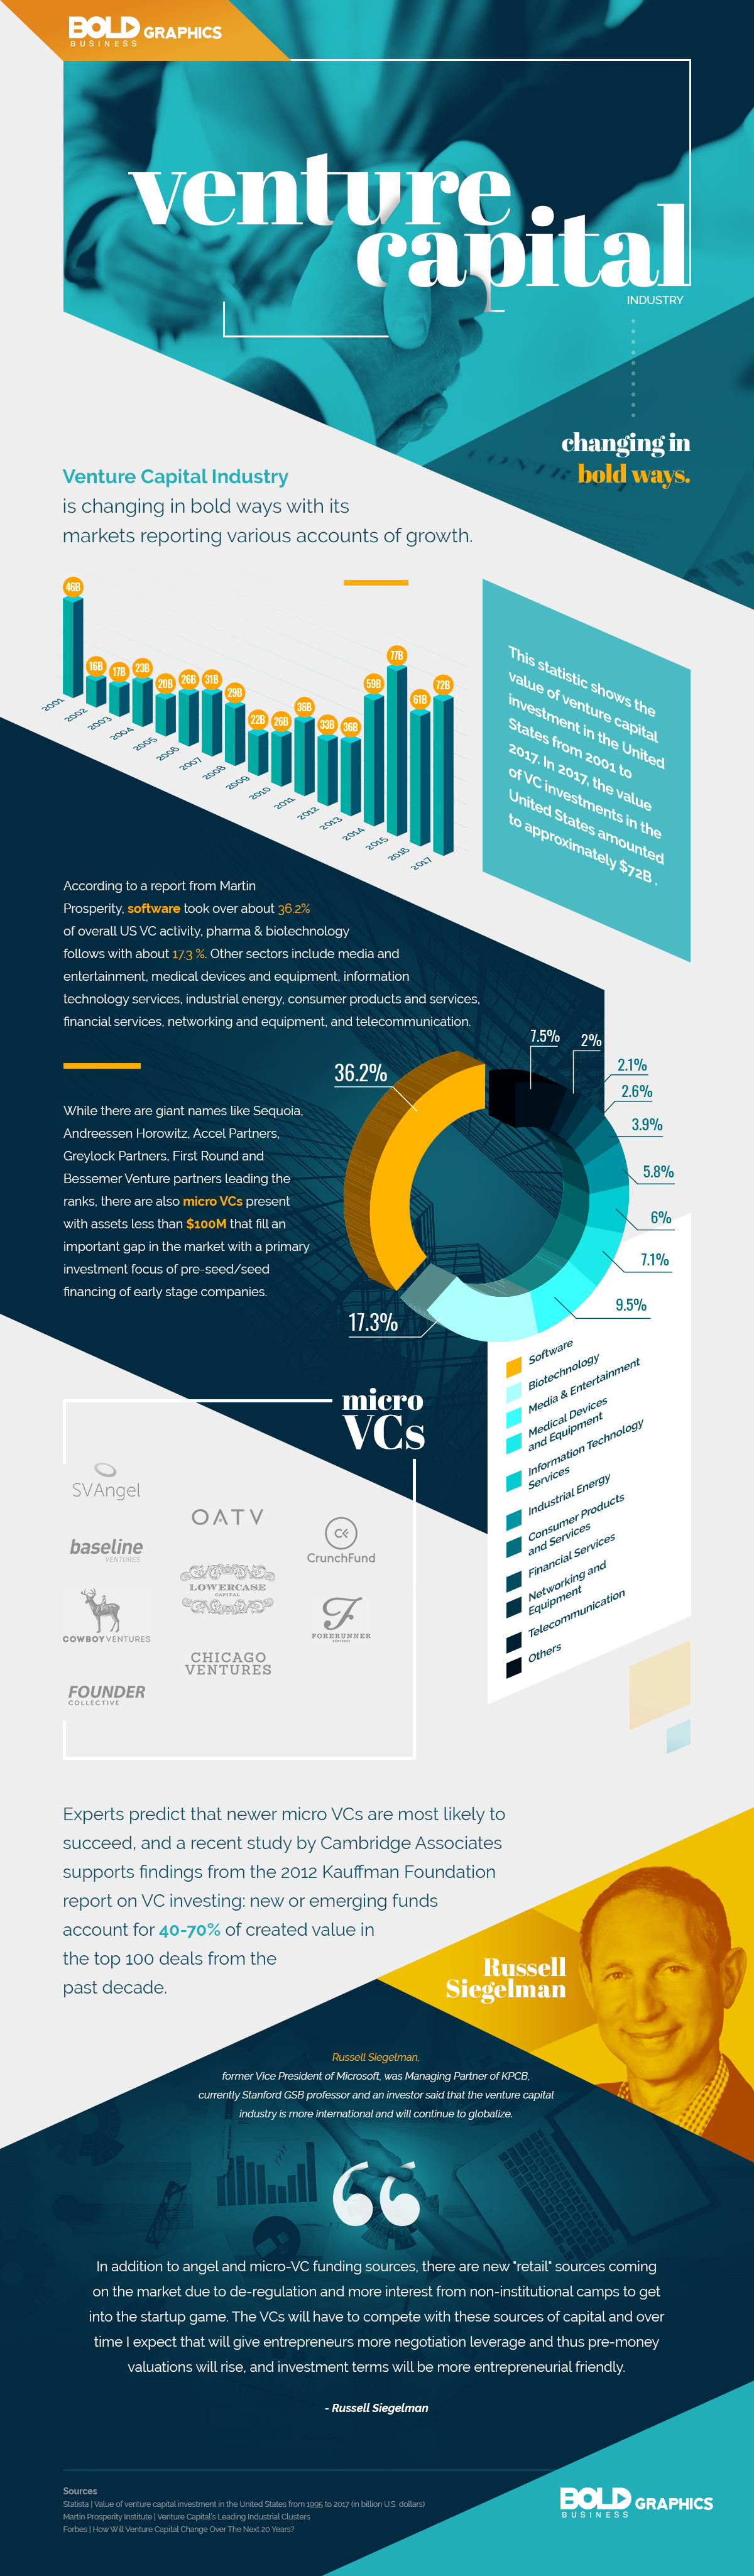 venture capital definition,venture capital firms,venture capital fund,venture capital news,venture capital data,venture capital statistics,micro vcs,venture capital industry infographic